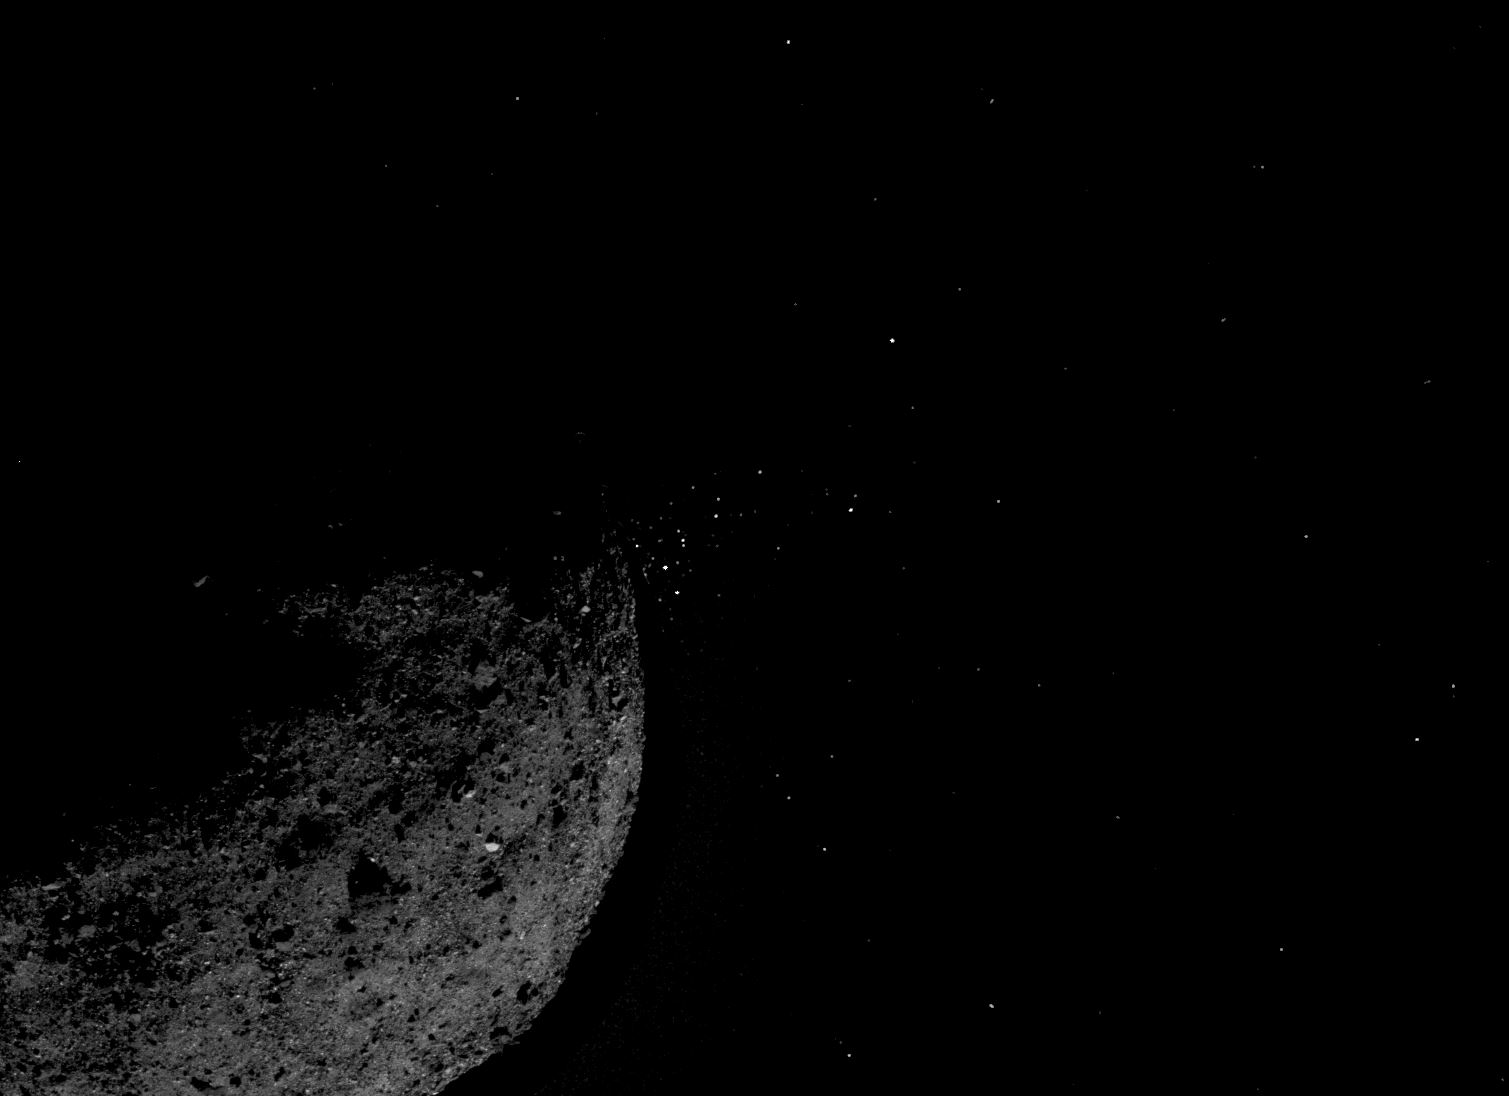 This view of asteroid Bennu ejecting particles from its surface on January 19 was created by combining two images taken on board NASA's OSIRIS-REx spacecraft. Other image processing techniques were also applied, such as cropping and adjusting the brightness and contrast of each image. - Image Credit: NASA/Goddard/University of Arizona/Lockheed Martin